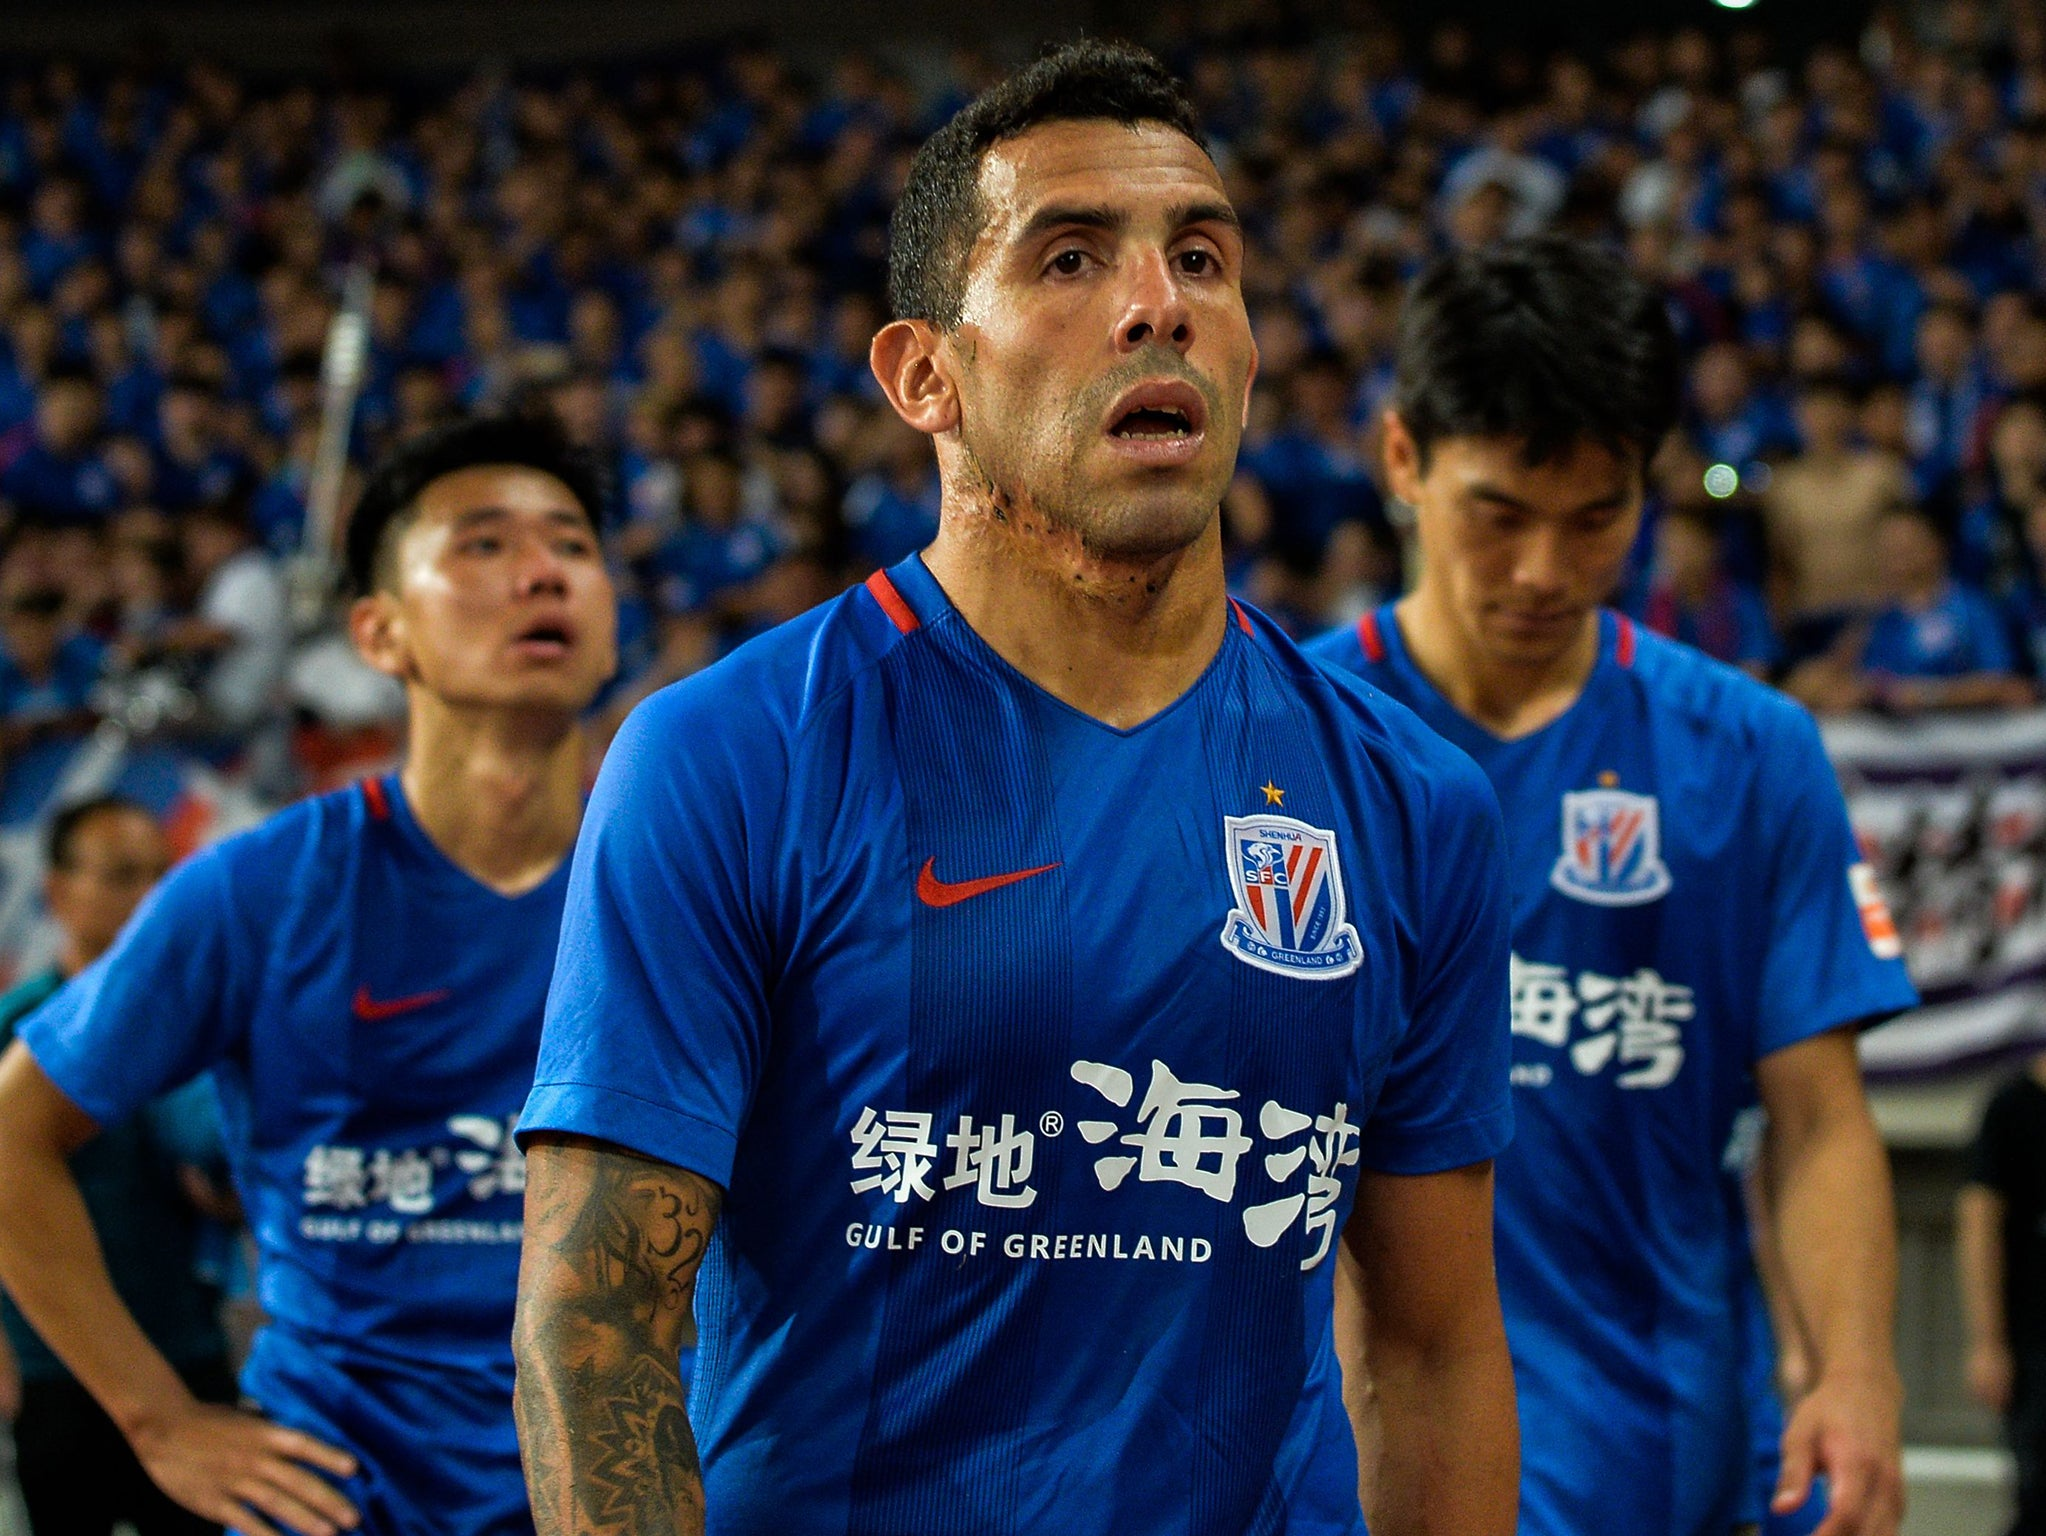 Carlos Tevez could be offered a new £34m-a-year contract despite flopping at Shanghai Shenhua